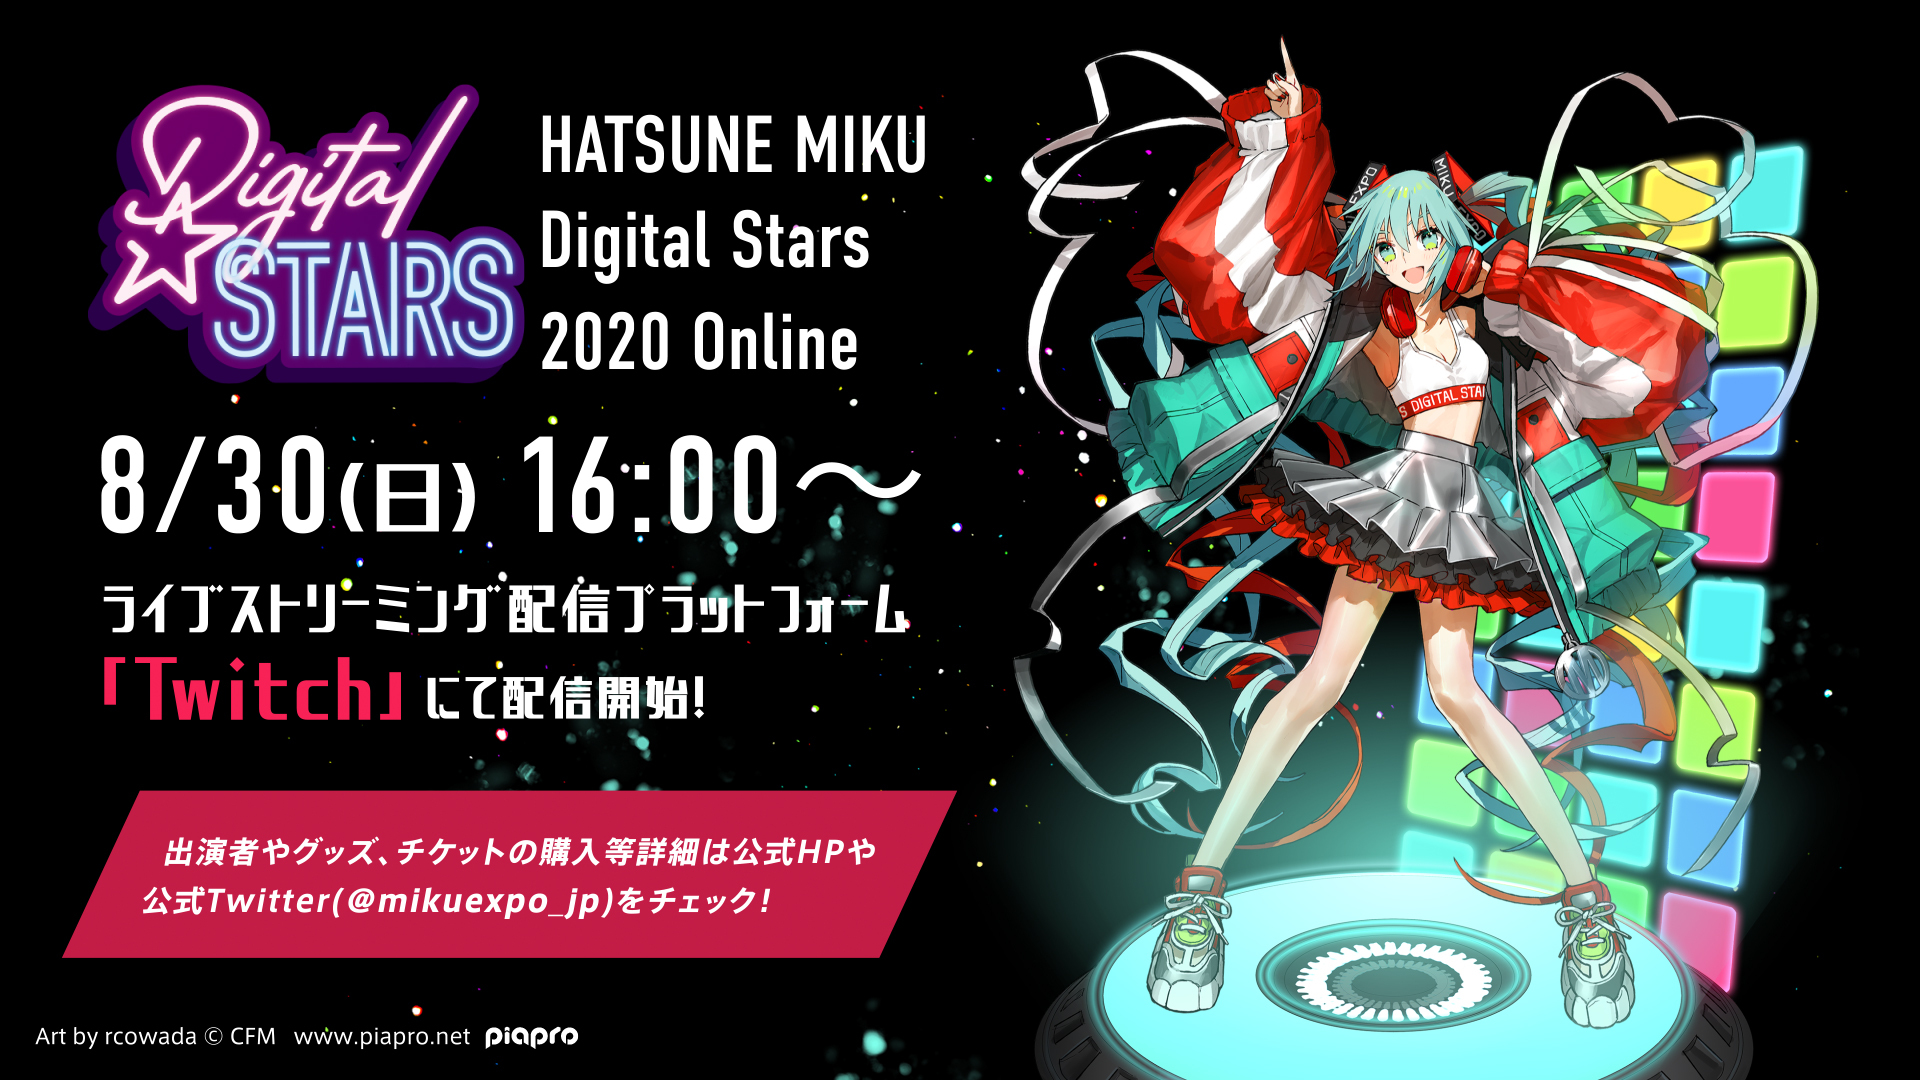 Hatsune Miku Birthday 2020 (1) - Digital Stars 2020 Online Information